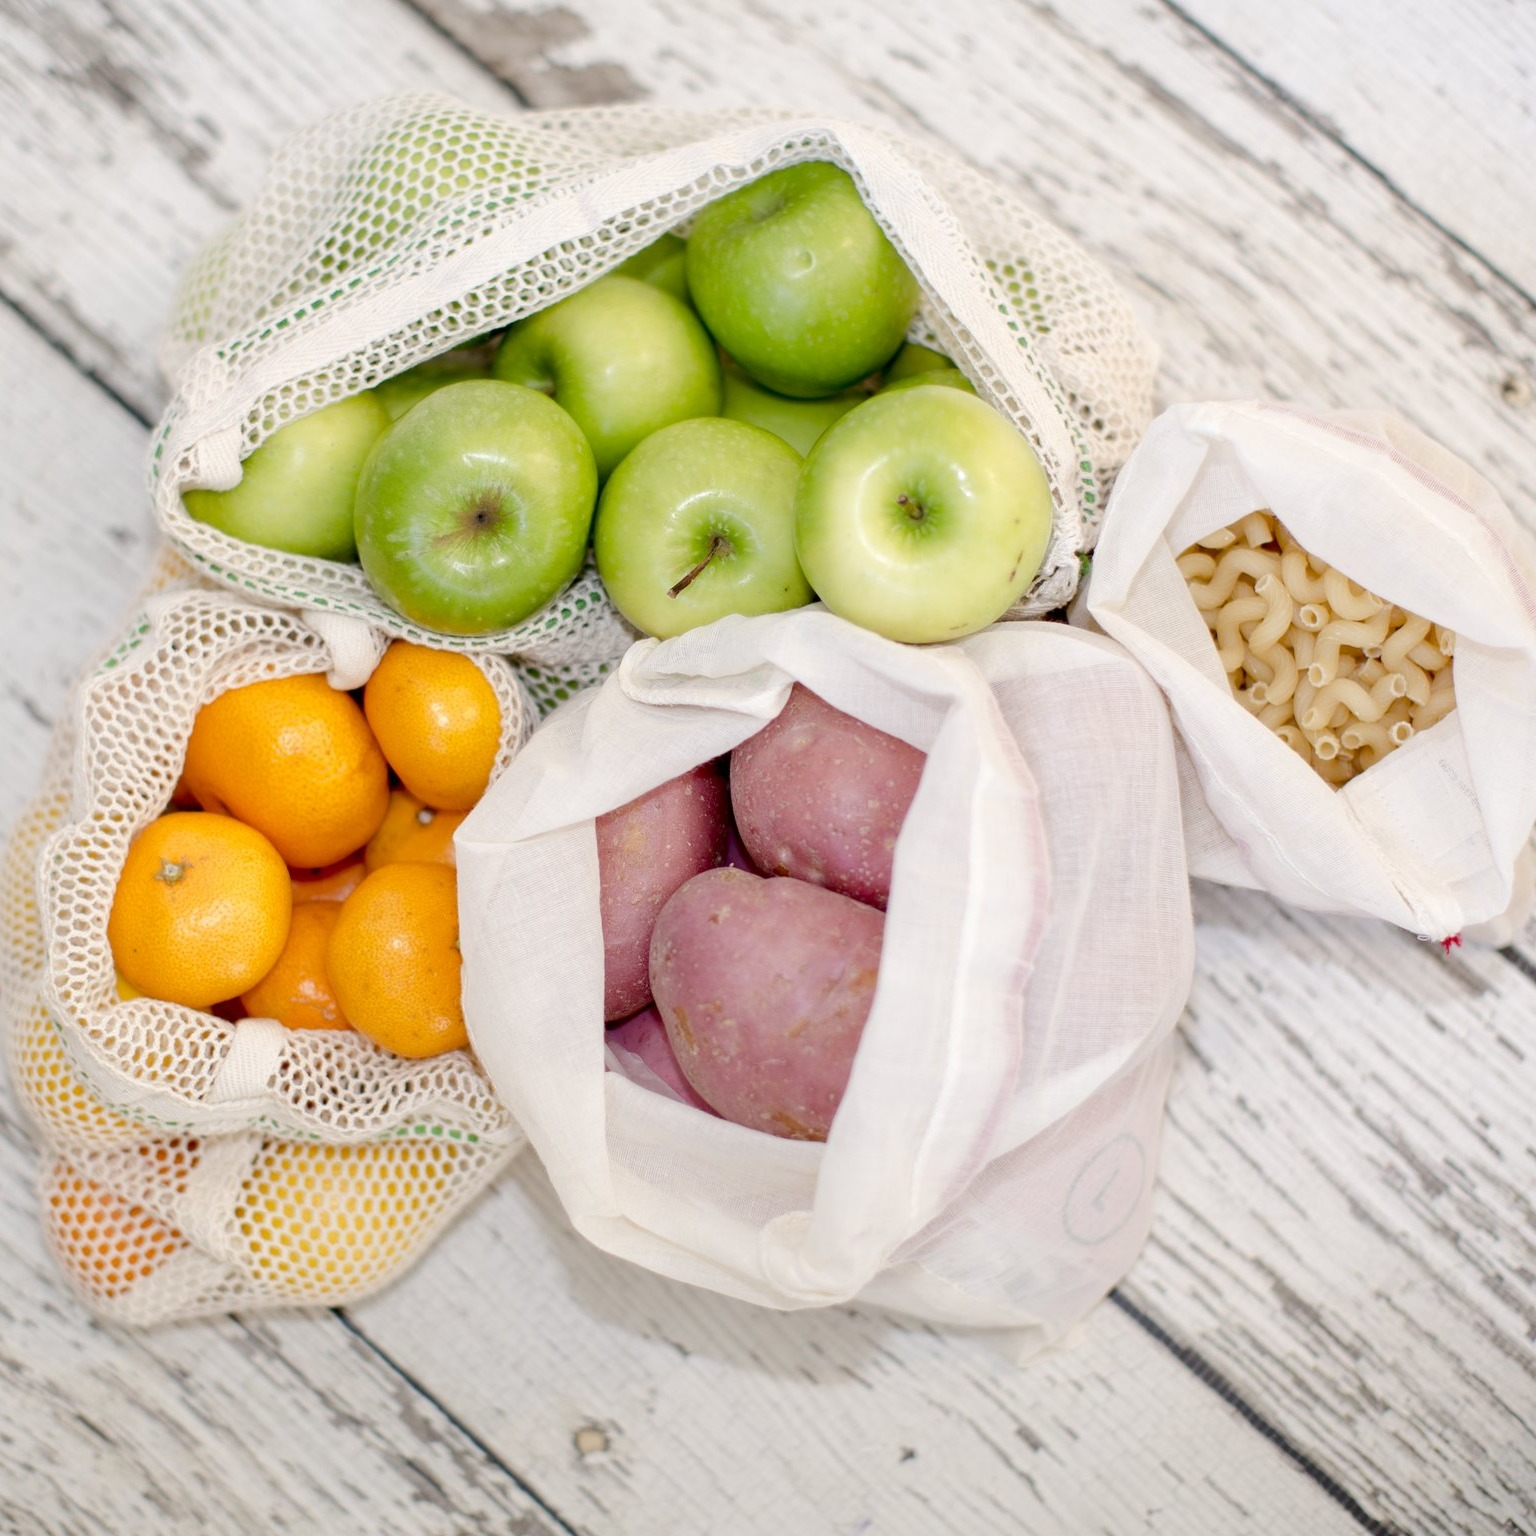 Mixed 2 Large and 2 Small Reusable Produce Bags image